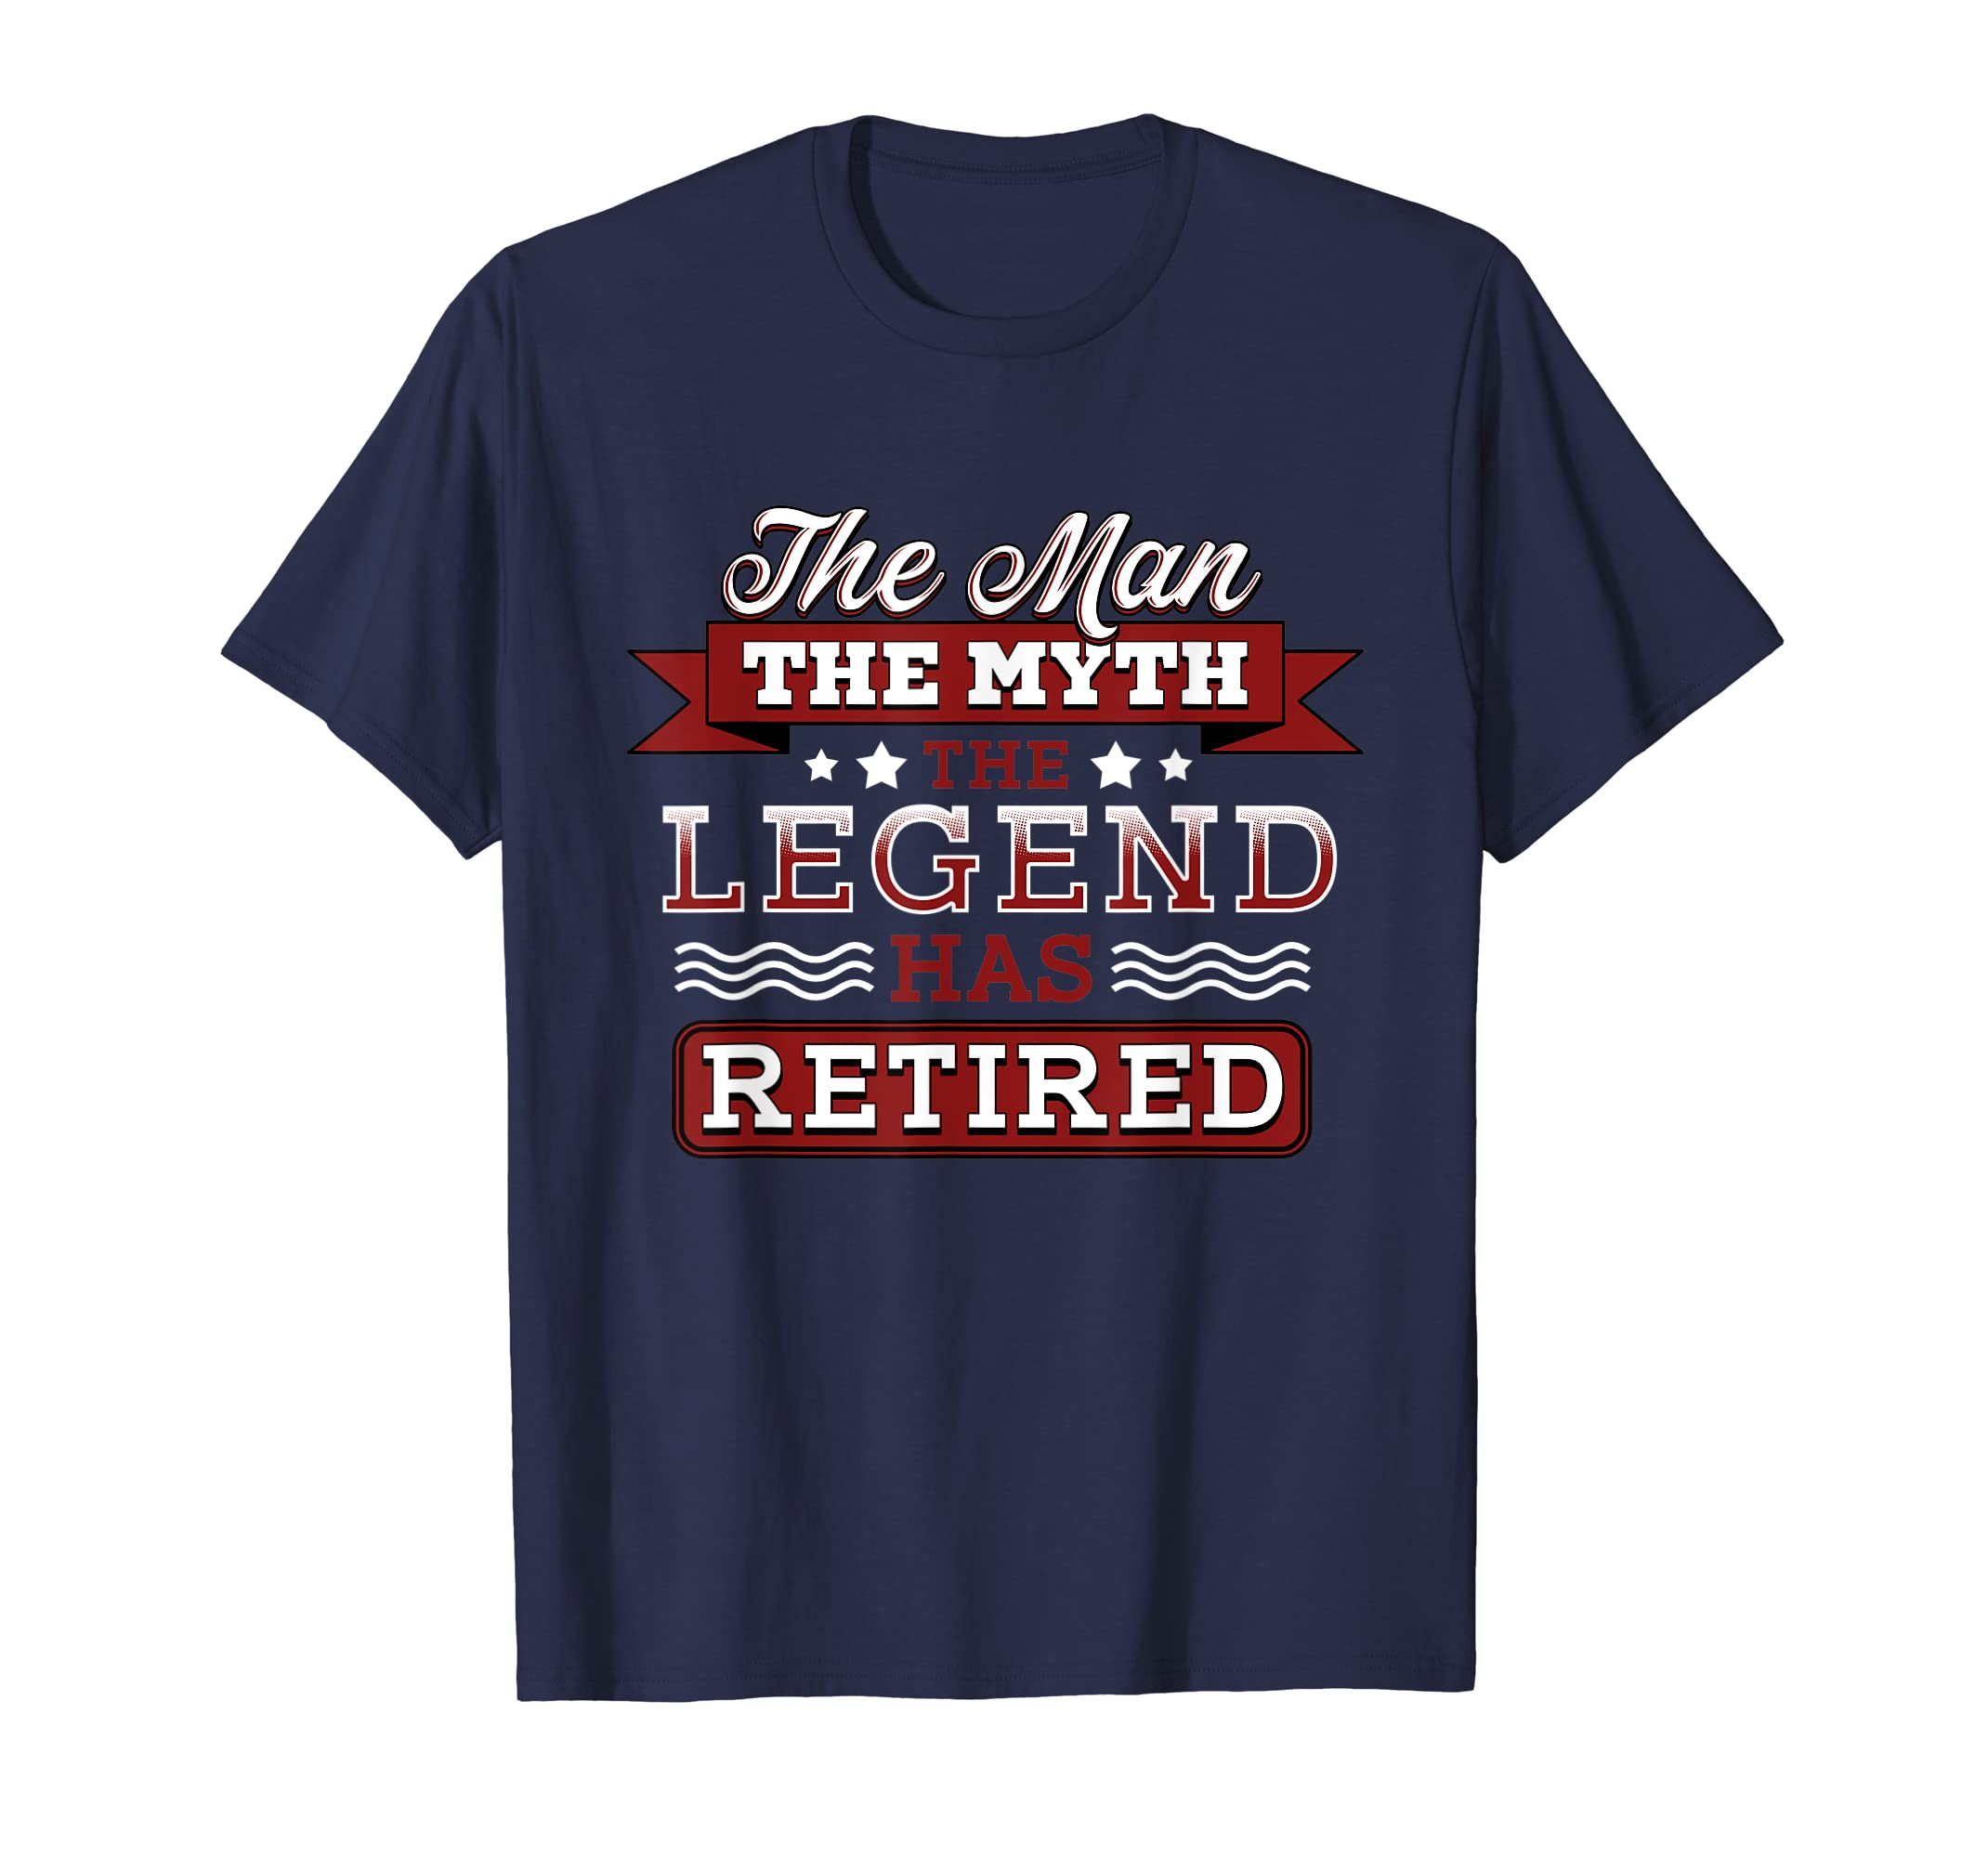 Retirement Funny Shirt The Man Myth Legend Has Retired-Yolotee